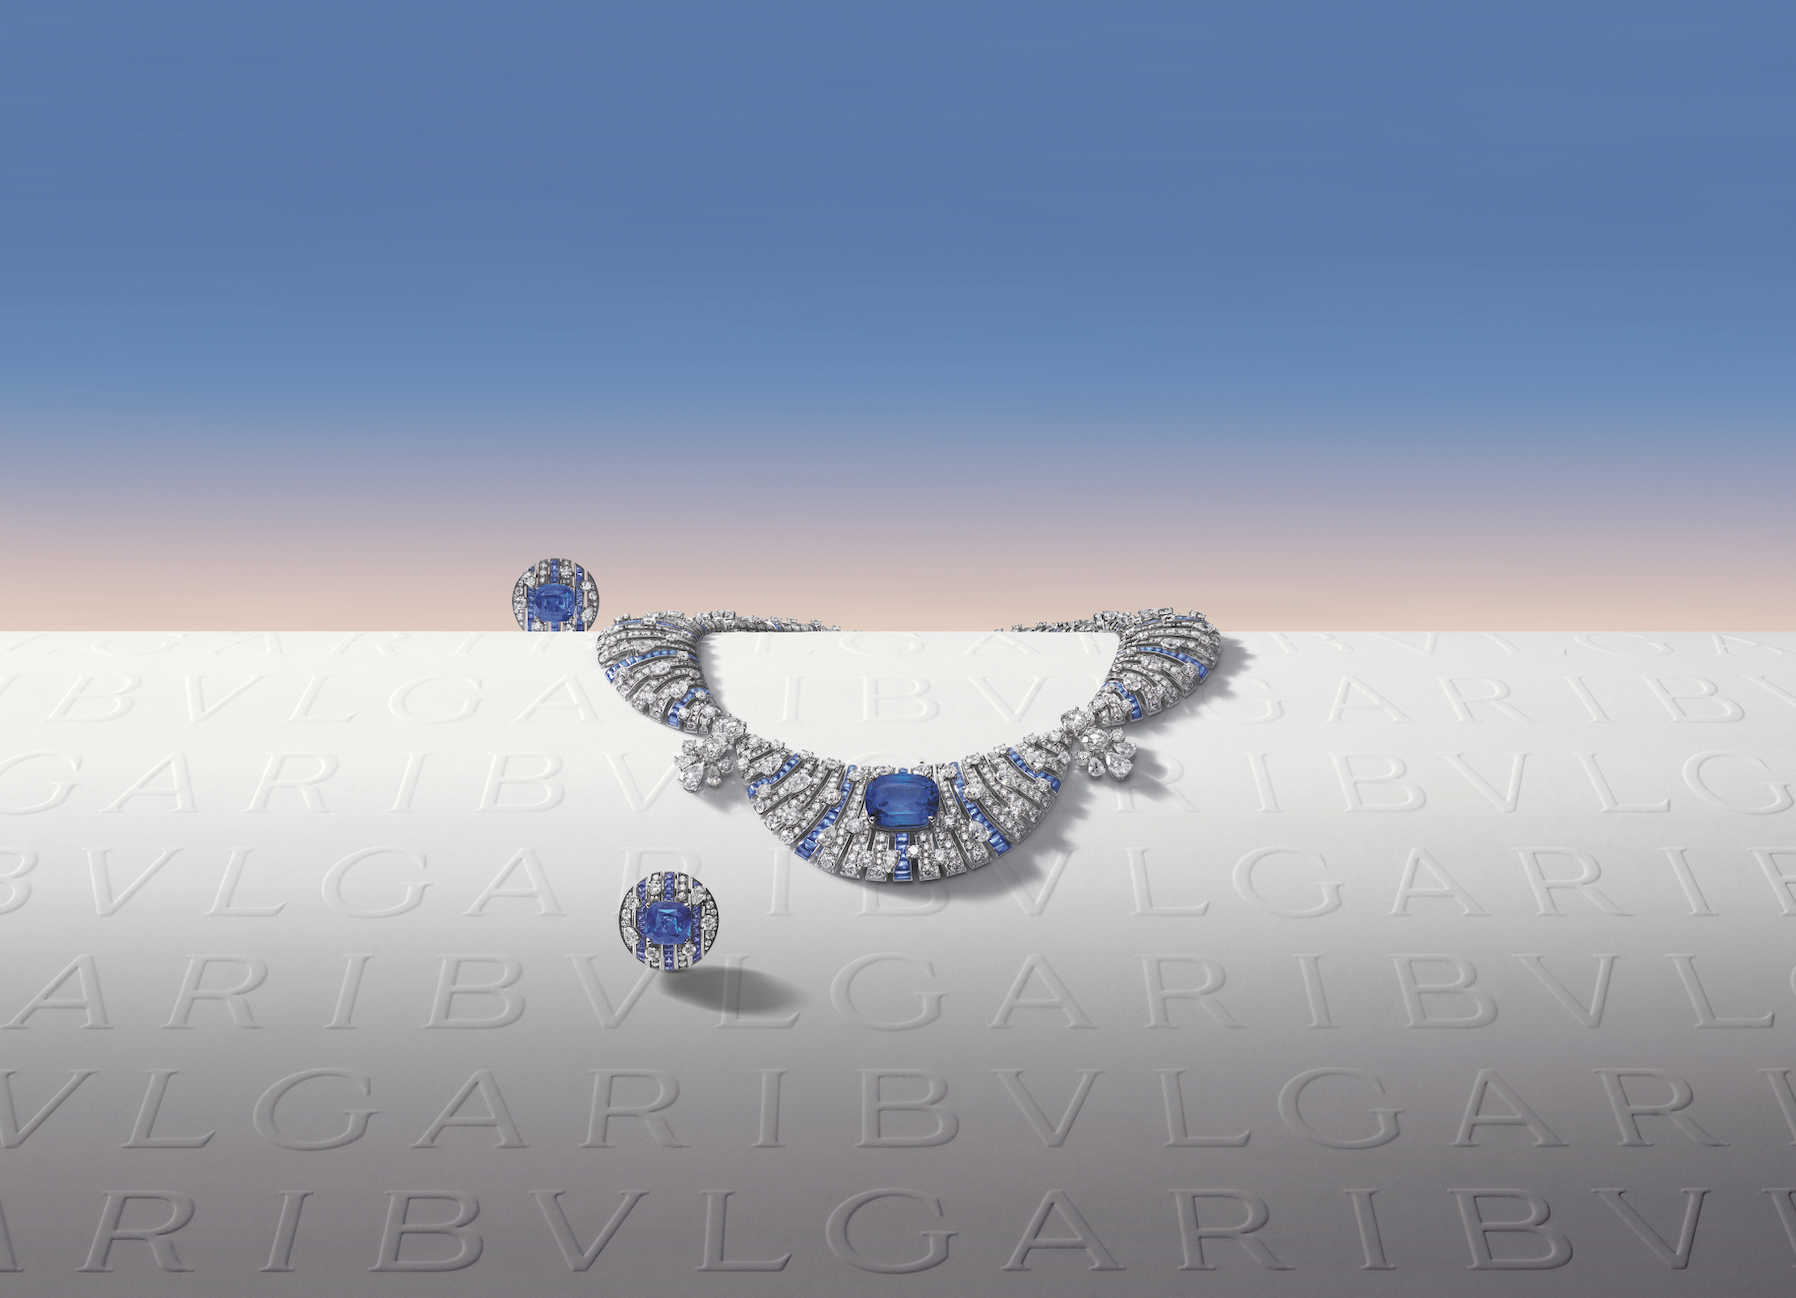 Bvlgari Unveils New Magnifica 2021 High Jewellery Collection